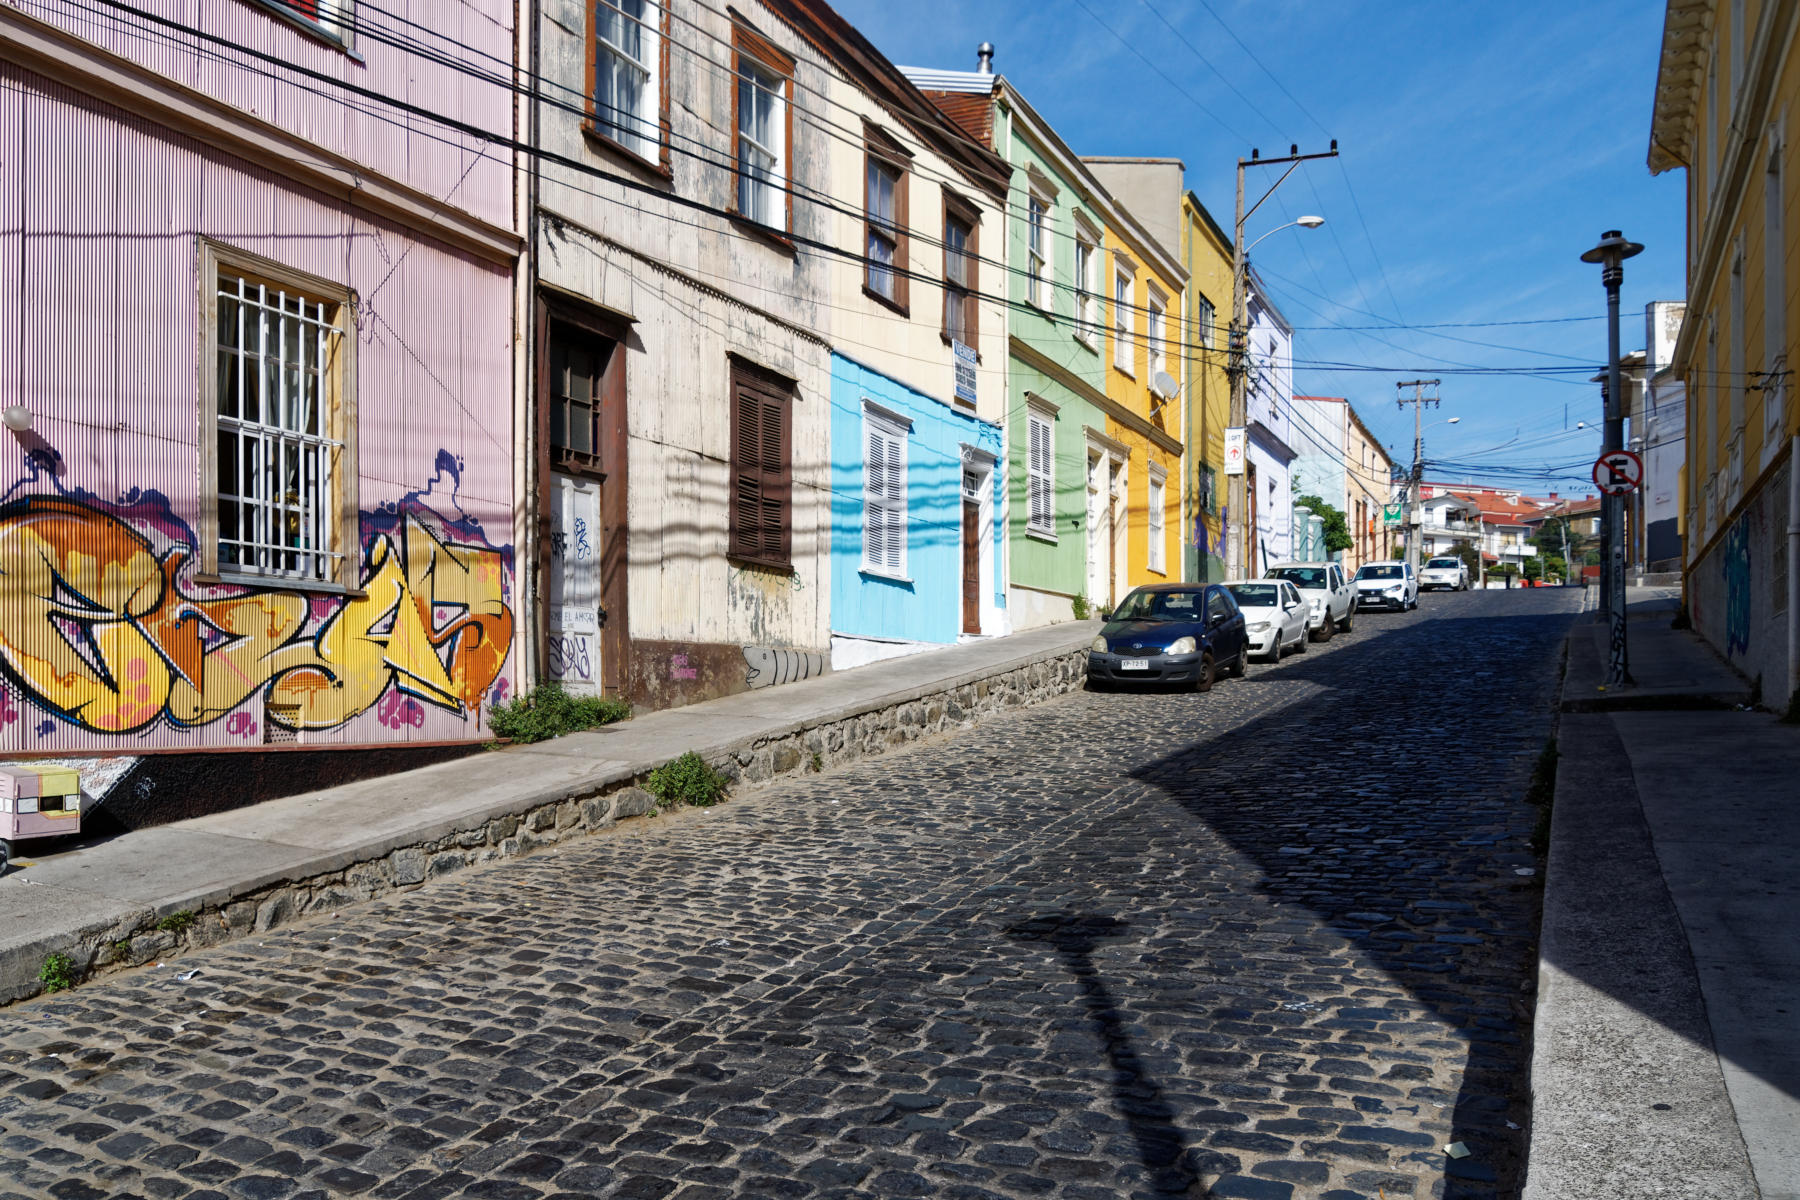 The colourful streets of Valparaiso